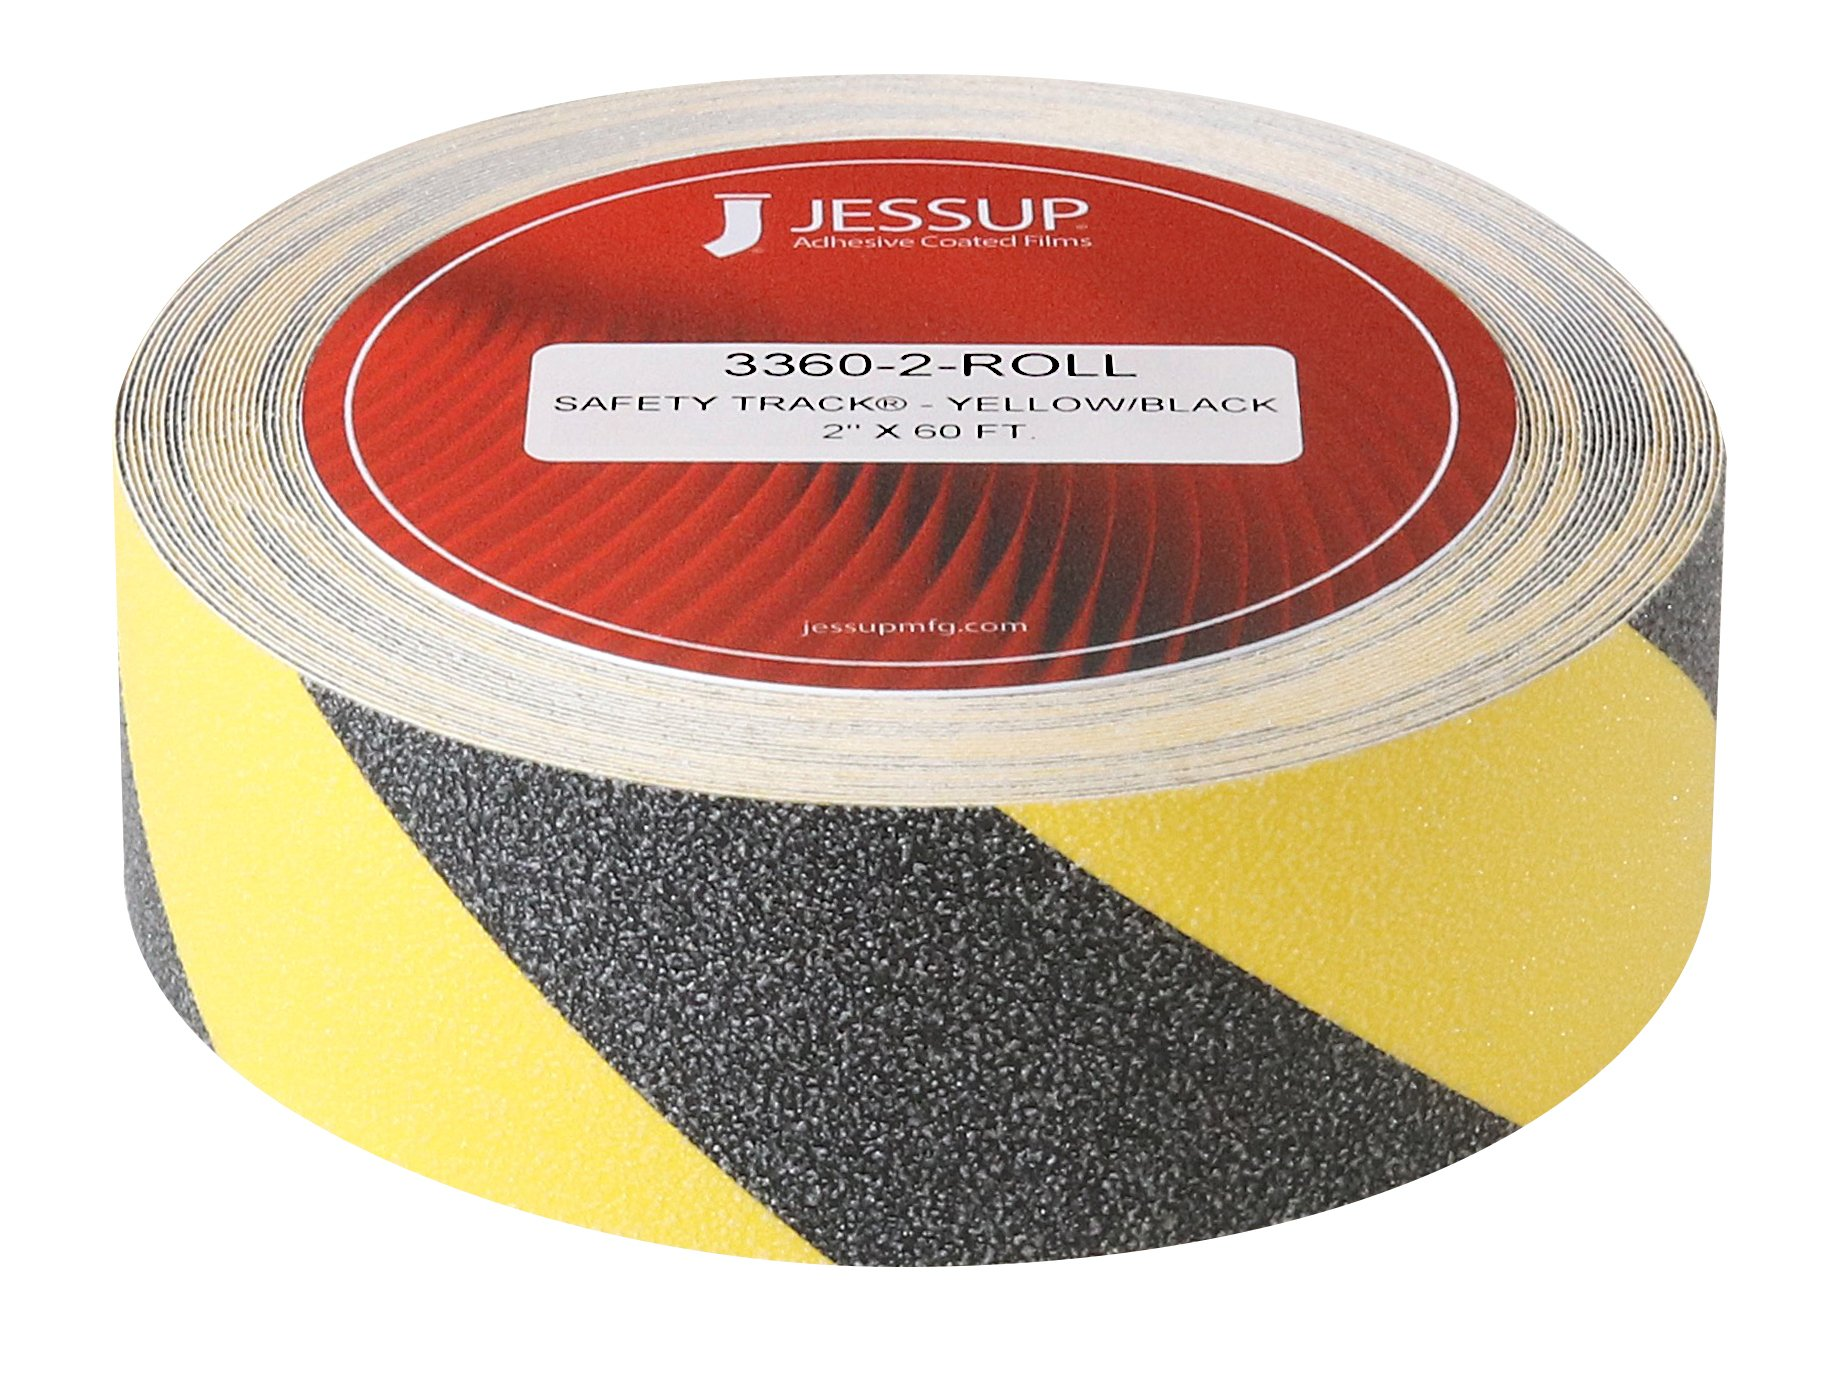 Jessup Safety Track 3360-2 Black and Yellow Non-slip and marking safety tape. Long-lasting, High traction, Made in the U.S.A, Manufacturer Direct (2 inch x 60 foot Roll)